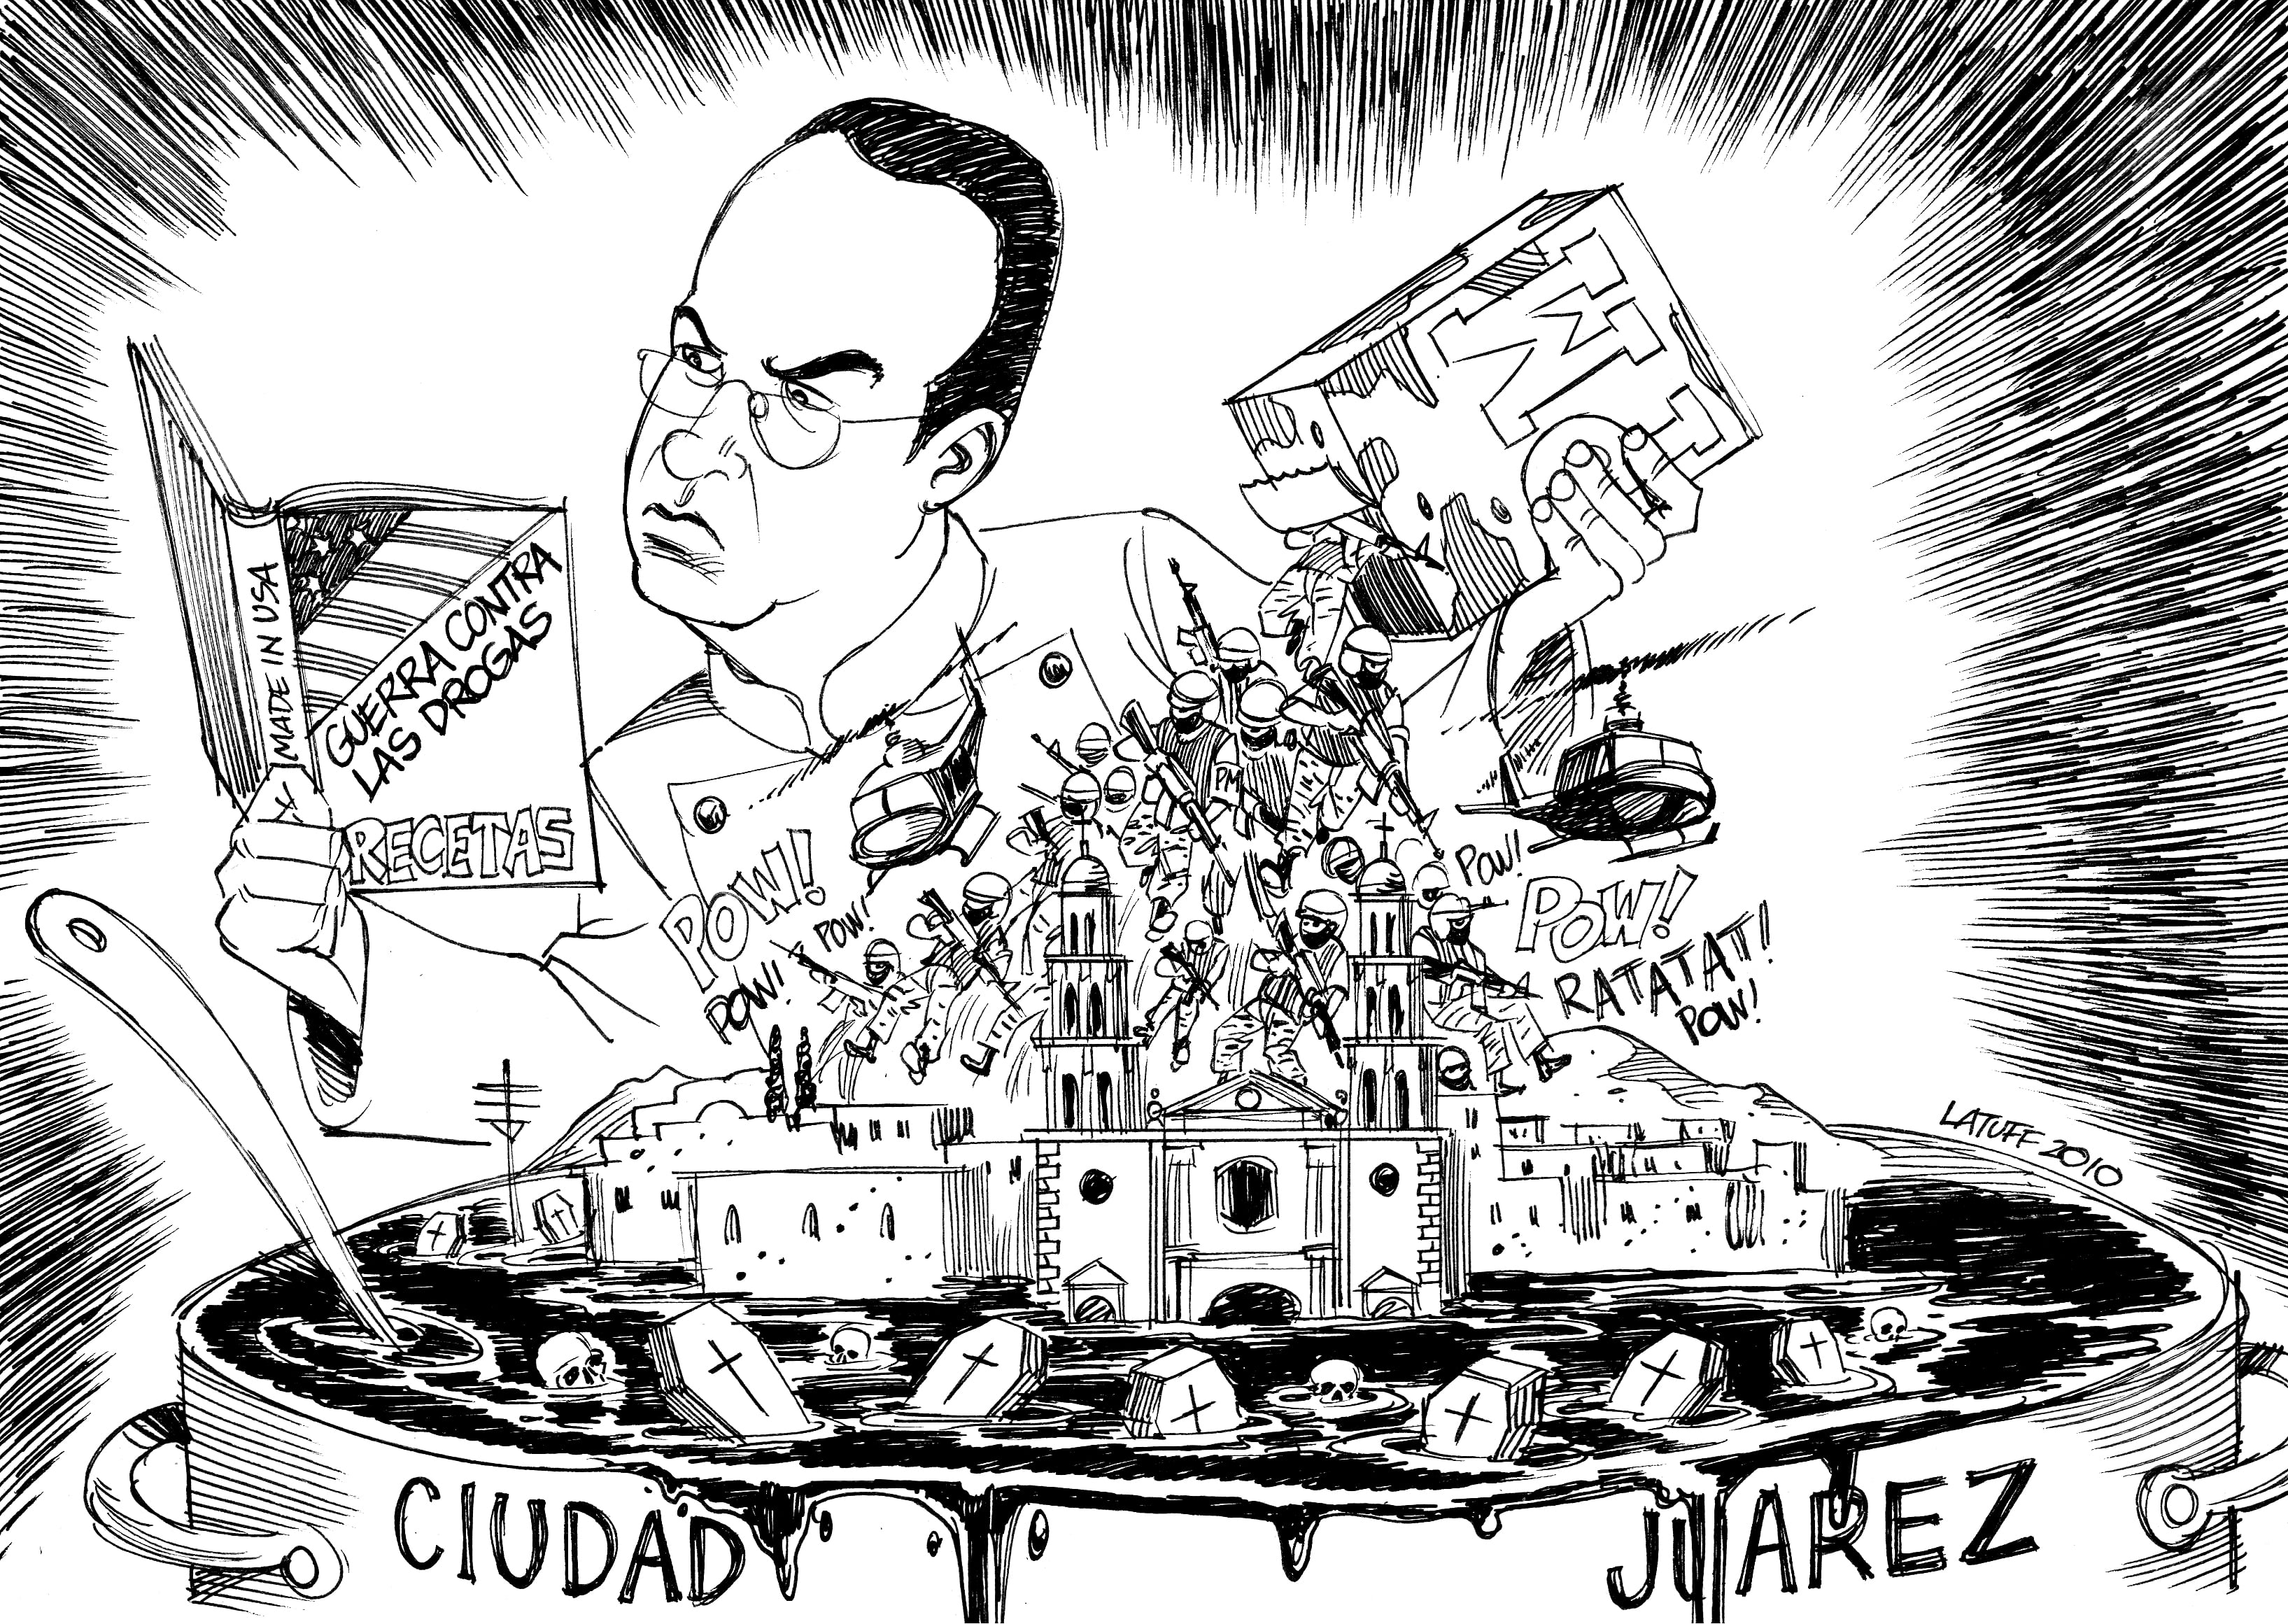 Mexico: Felipe Calderón's War on Drugs by Carlos Latuff